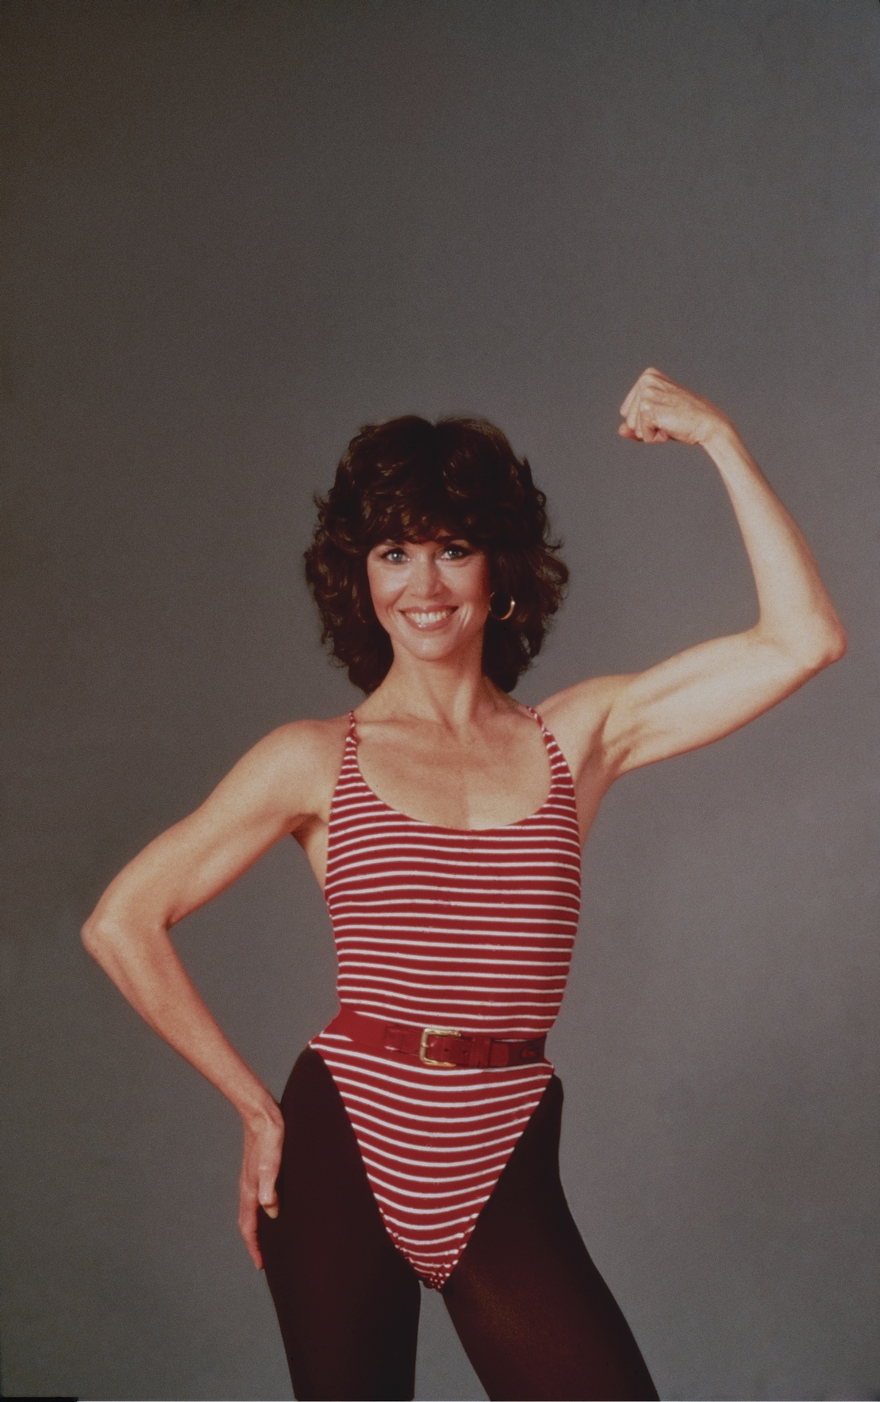 Fonda Posing For Her The Jane Fonda Workout Book 1981 -7824